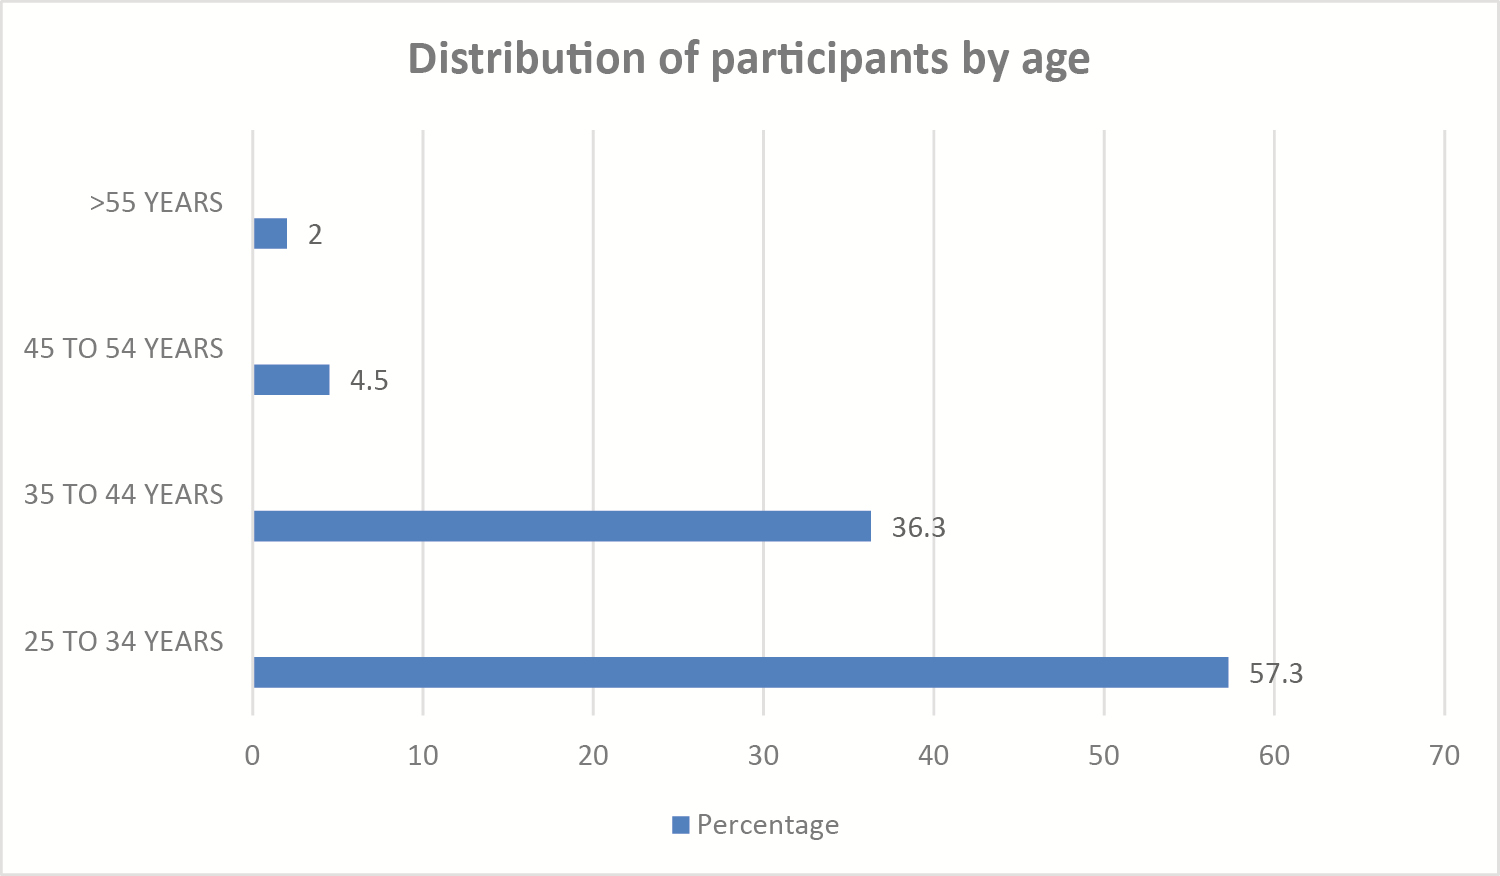 Figure 2: Distribution of participants by age